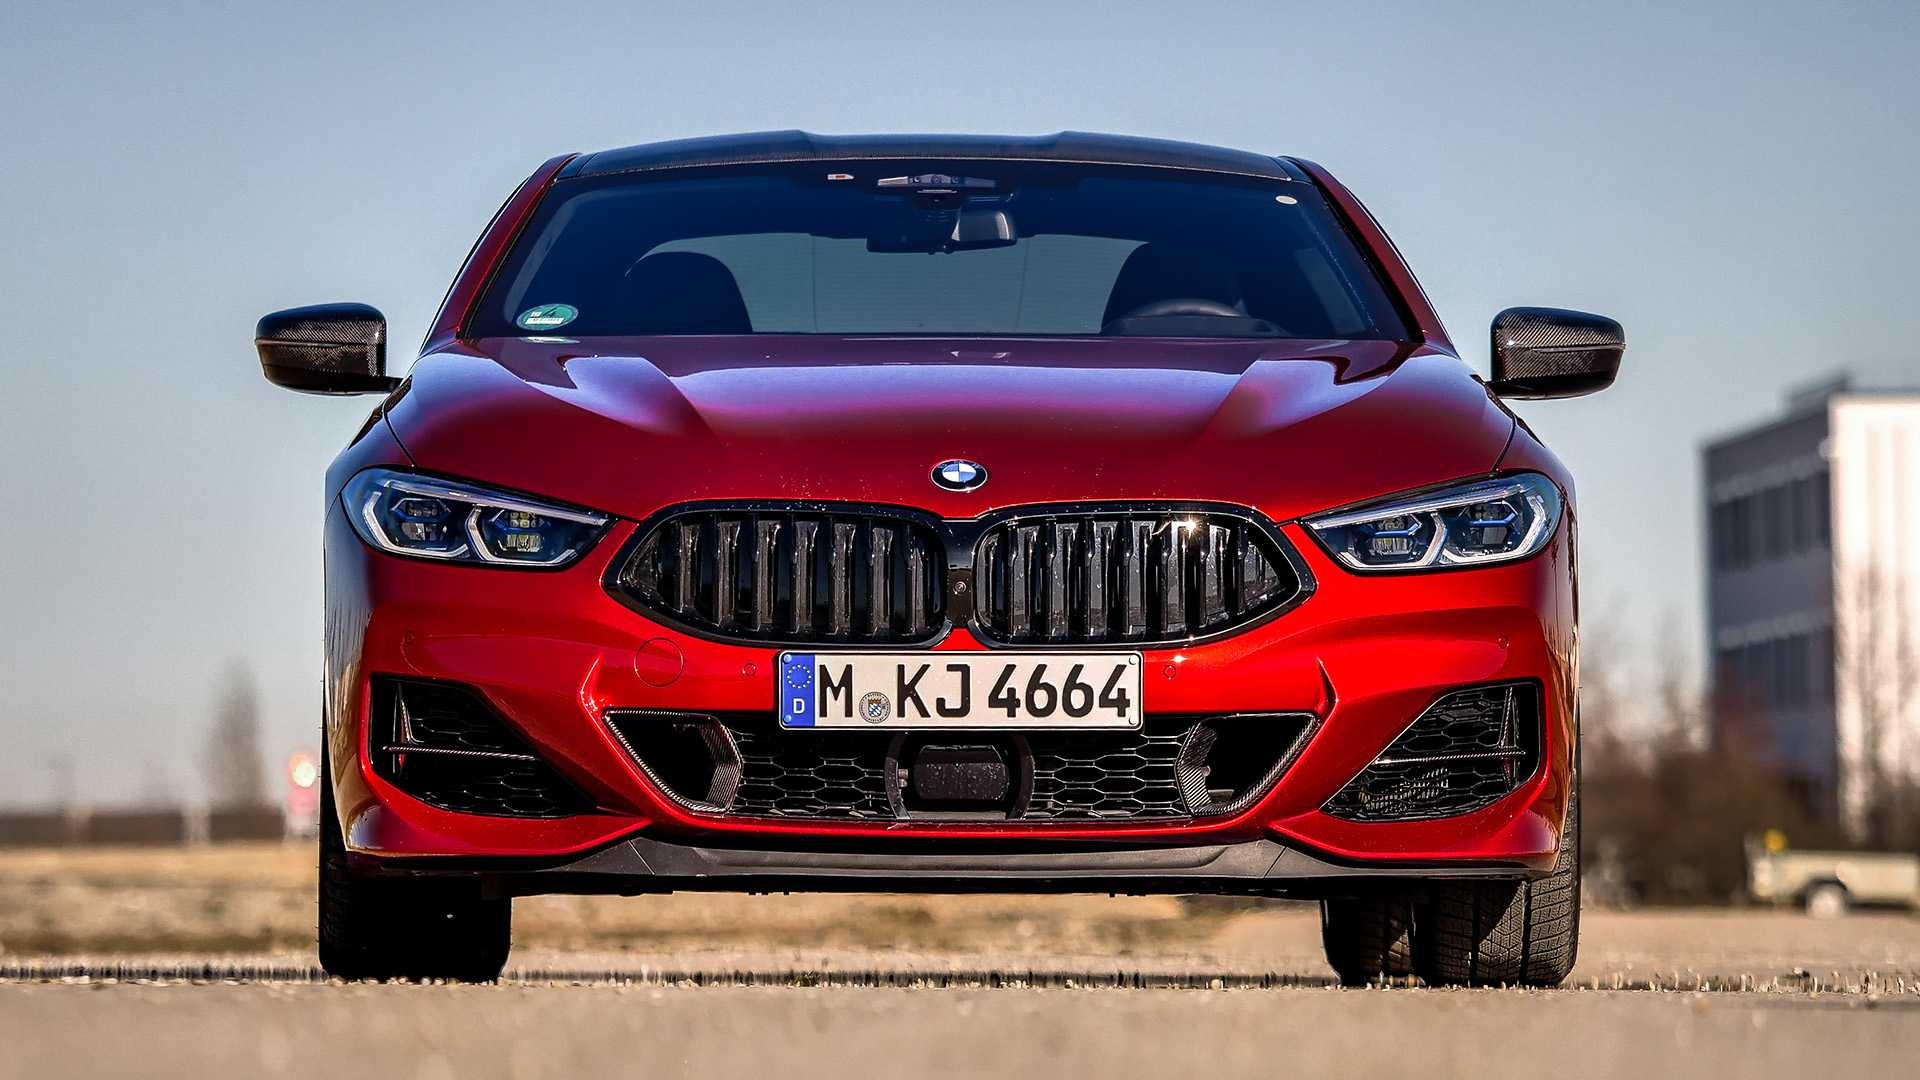 2020 BMW 8 Series Lineup Gets Entry-Level 840i Model From